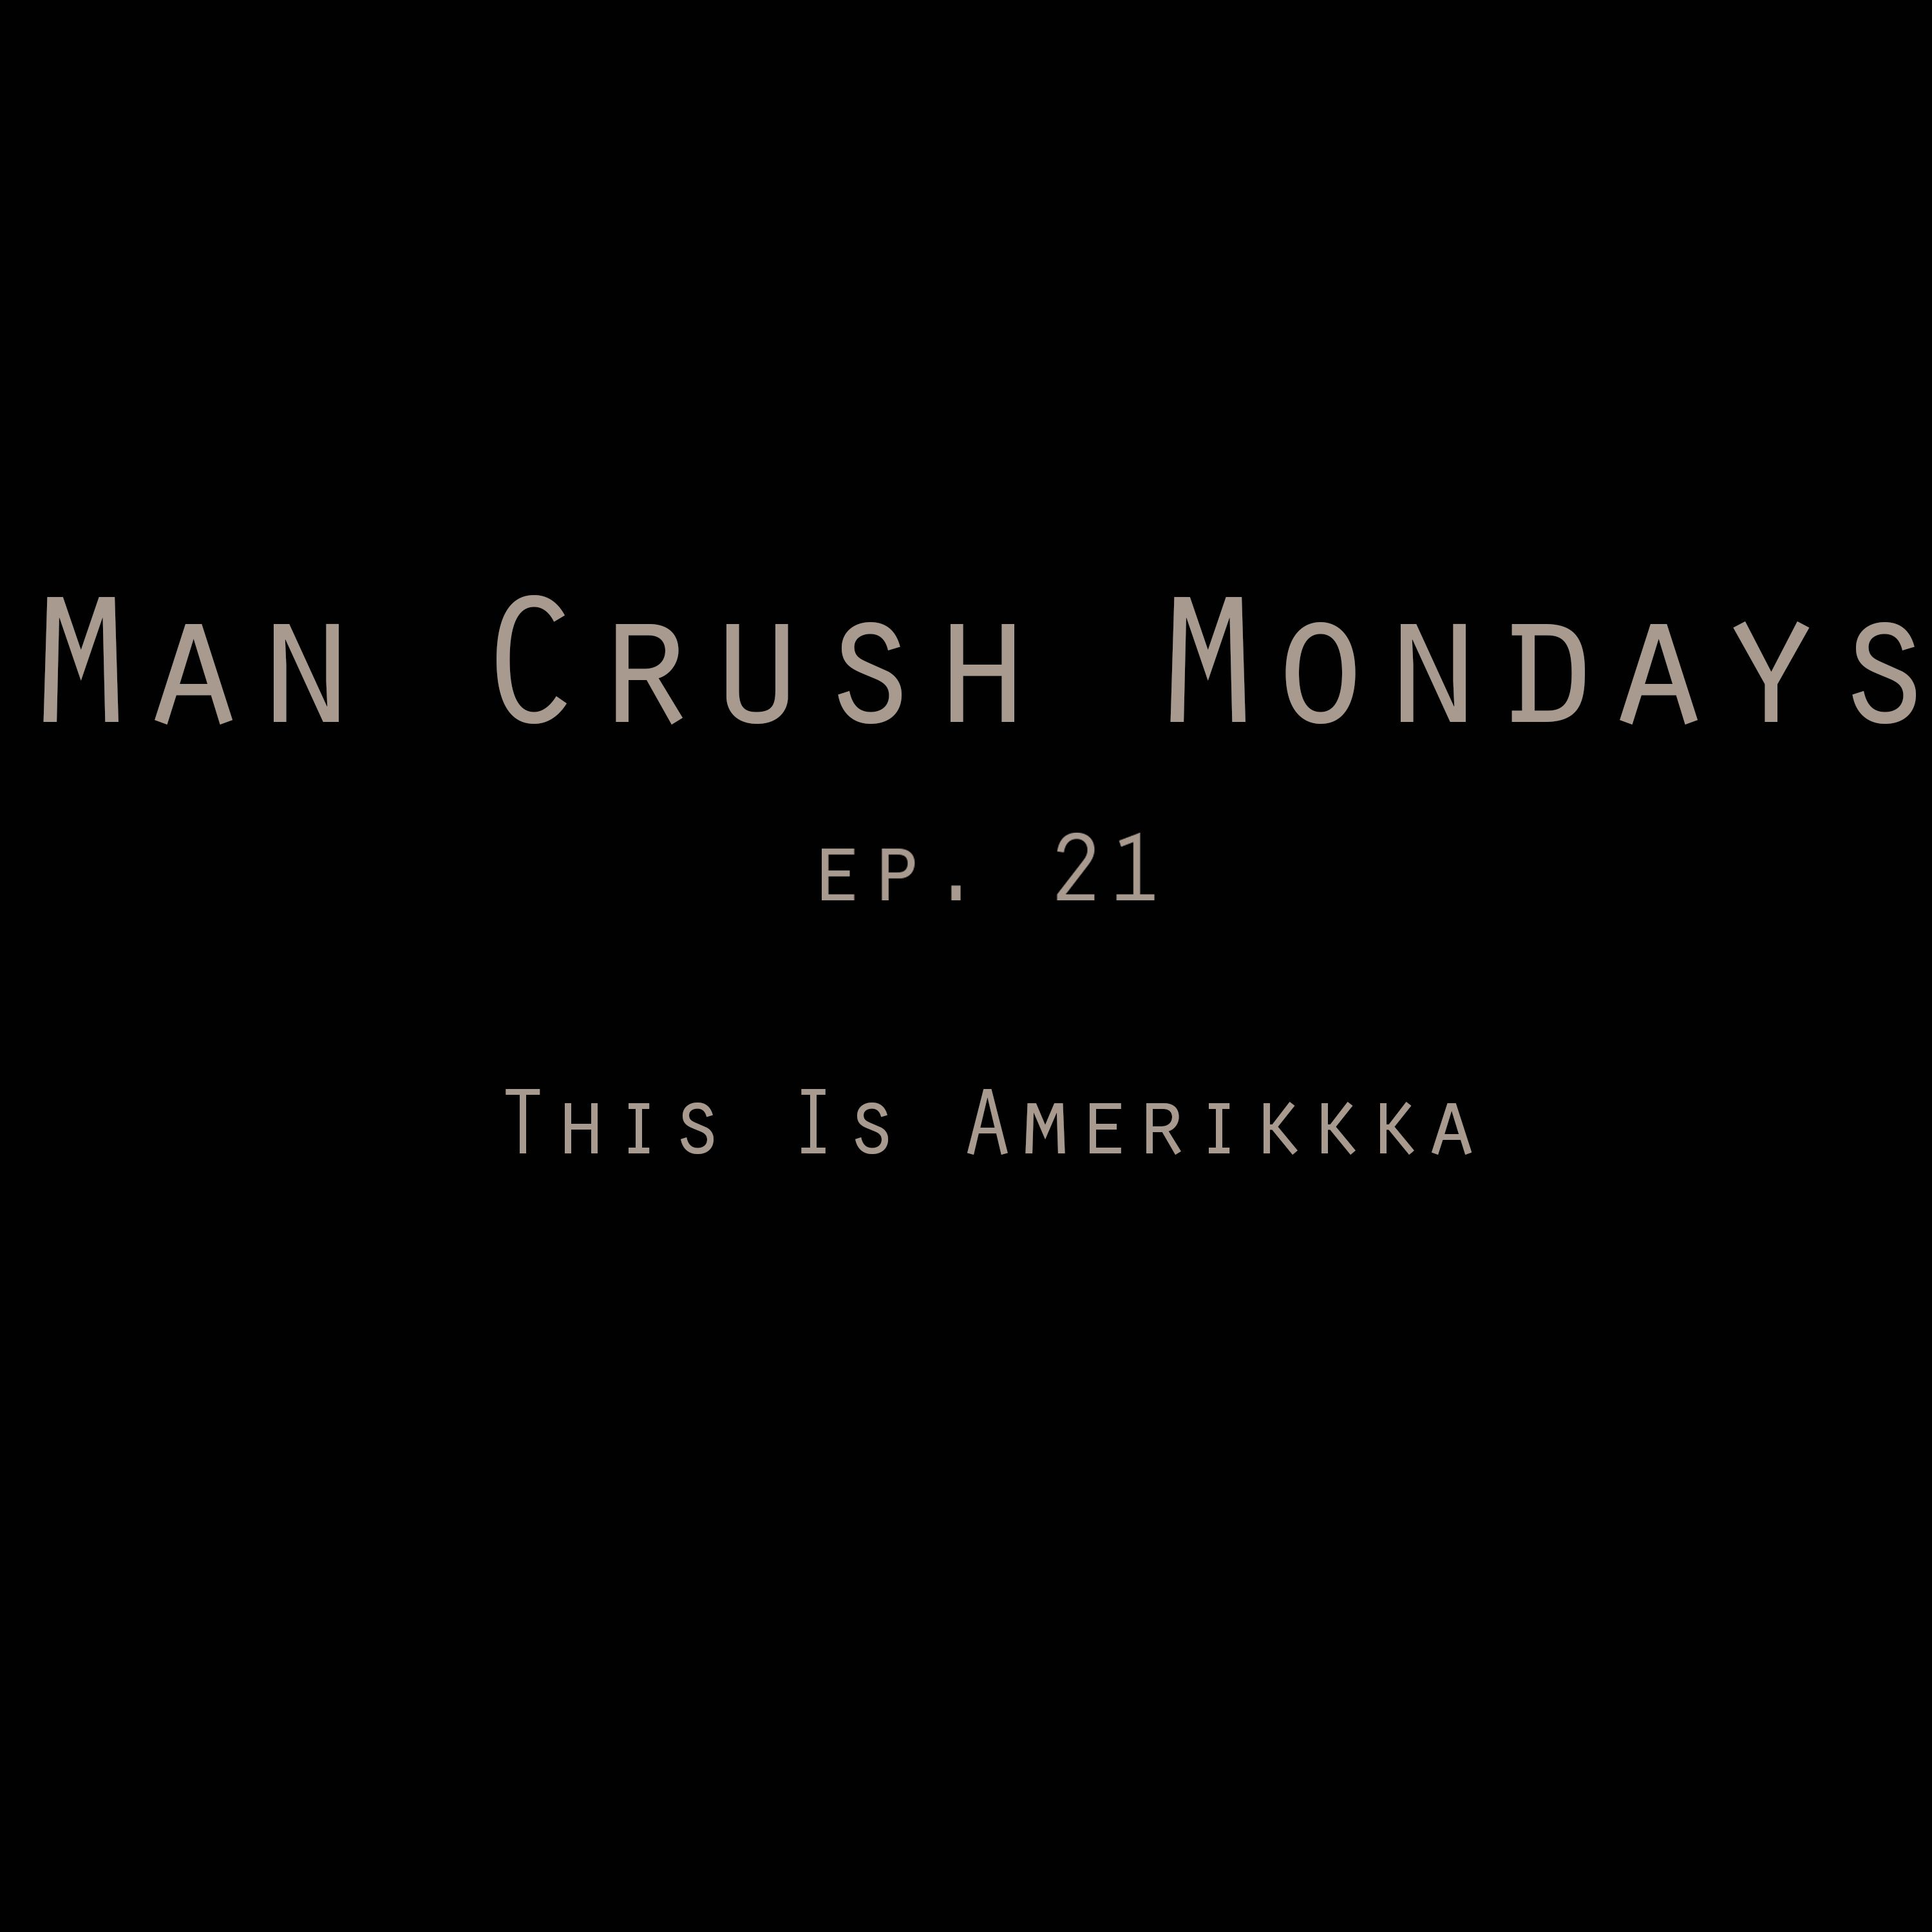 Man Crush Mondays, The Podcast | Podbay